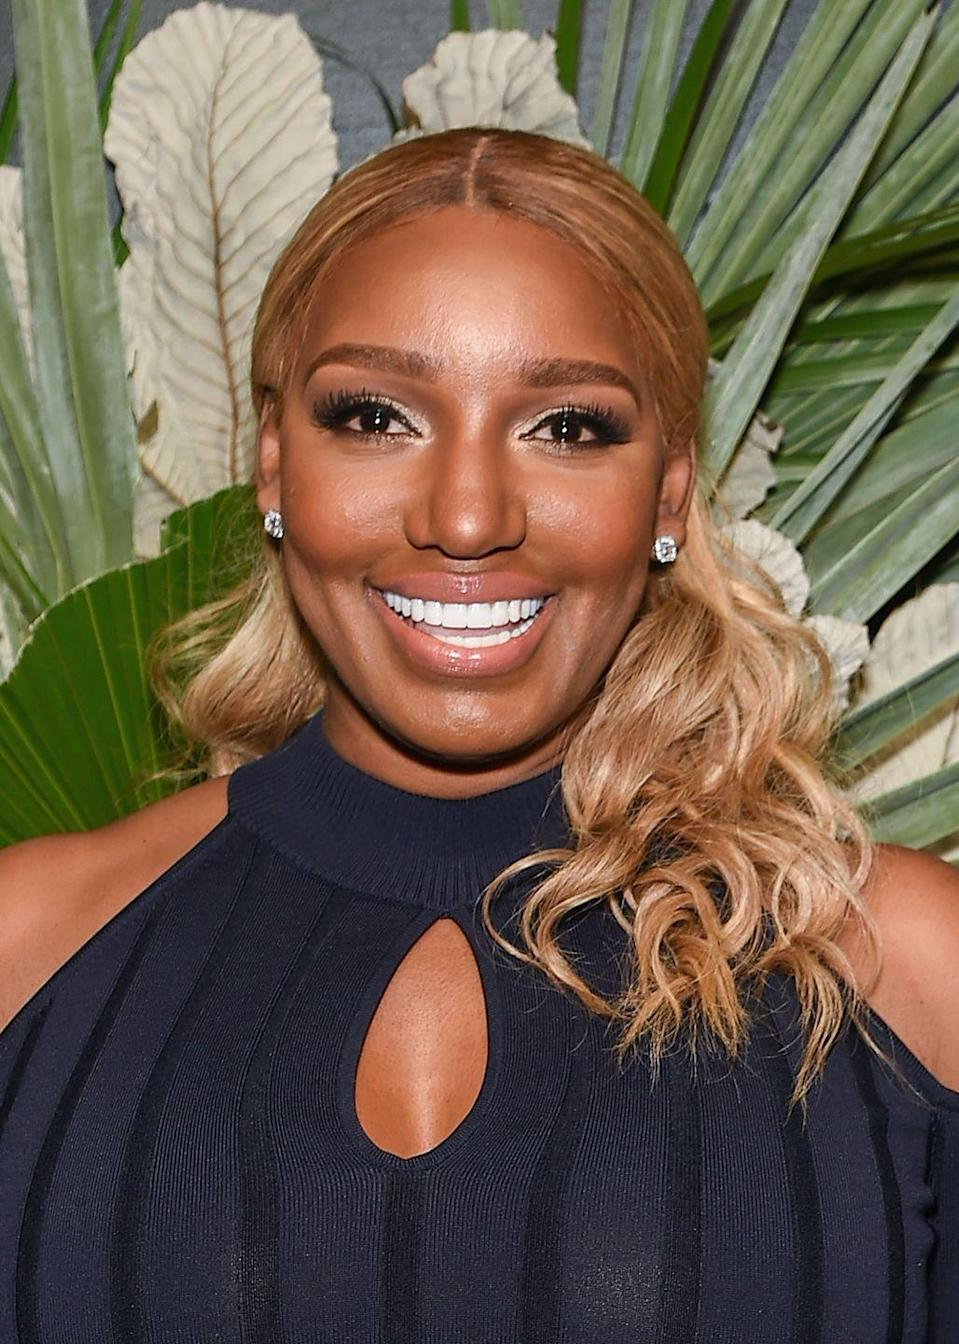 """<p><strong>Real name: </strong>Linnethia Monique Johnson<br></p><p>NeNe is an awesome name, but it's not her birth name. The <em>Real Housewives of Atlanta</em> star <a href=""""https://www.instyle.com/celebrity/celebrities-you-never-knew-changed-their-names"""" rel=""""nofollow noopener"""" target=""""_blank"""" data-ylk=""""slk:changed her name"""" class=""""link rapid-noclick-resp"""">changed her name</a> to make it more catchy for the screen. </p>"""